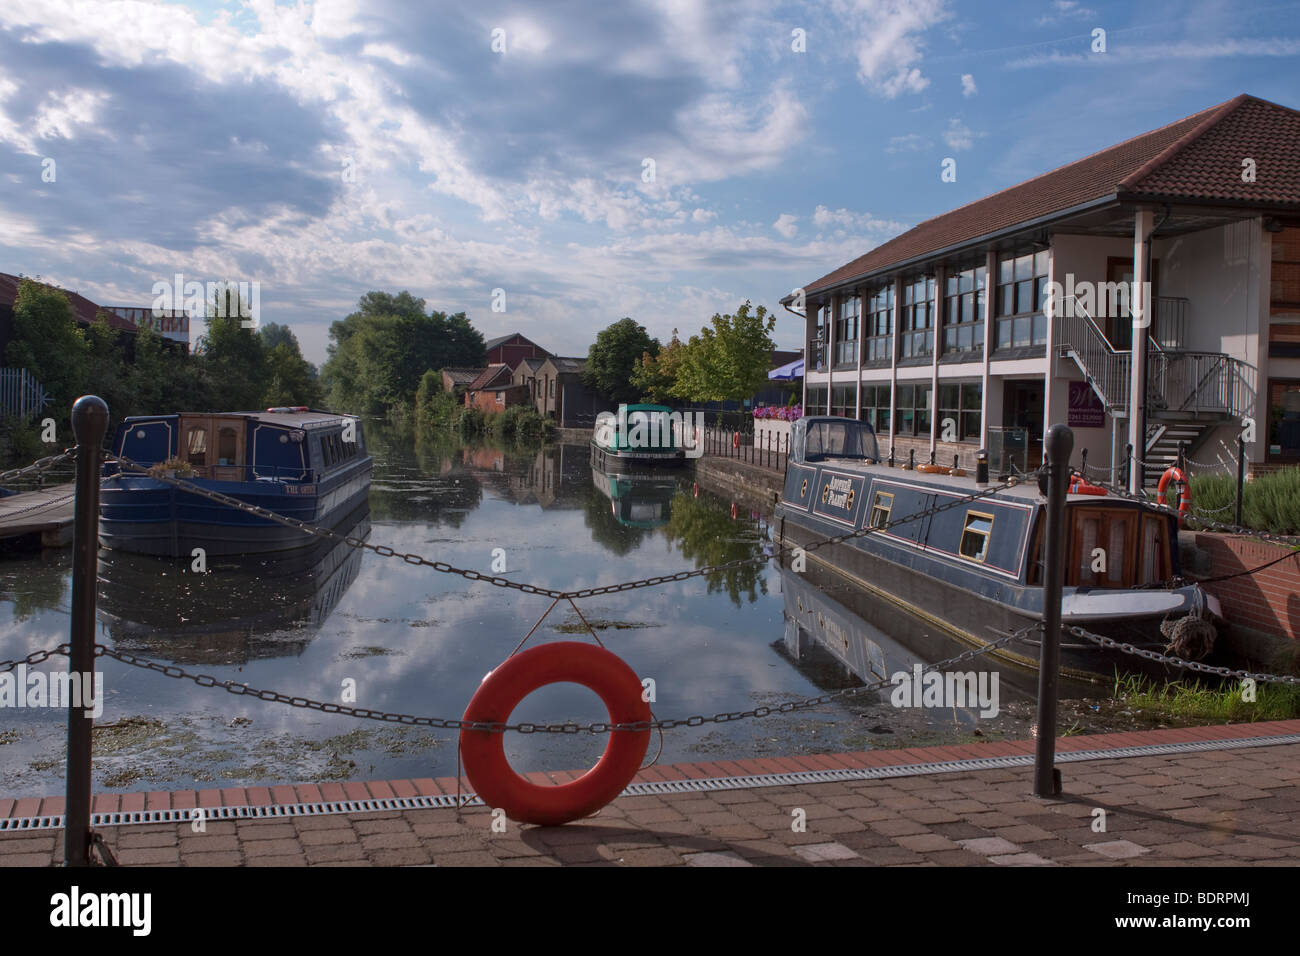 Waterfront Restaurant and barges, Chelmsford, Essex, UK - Stock Image